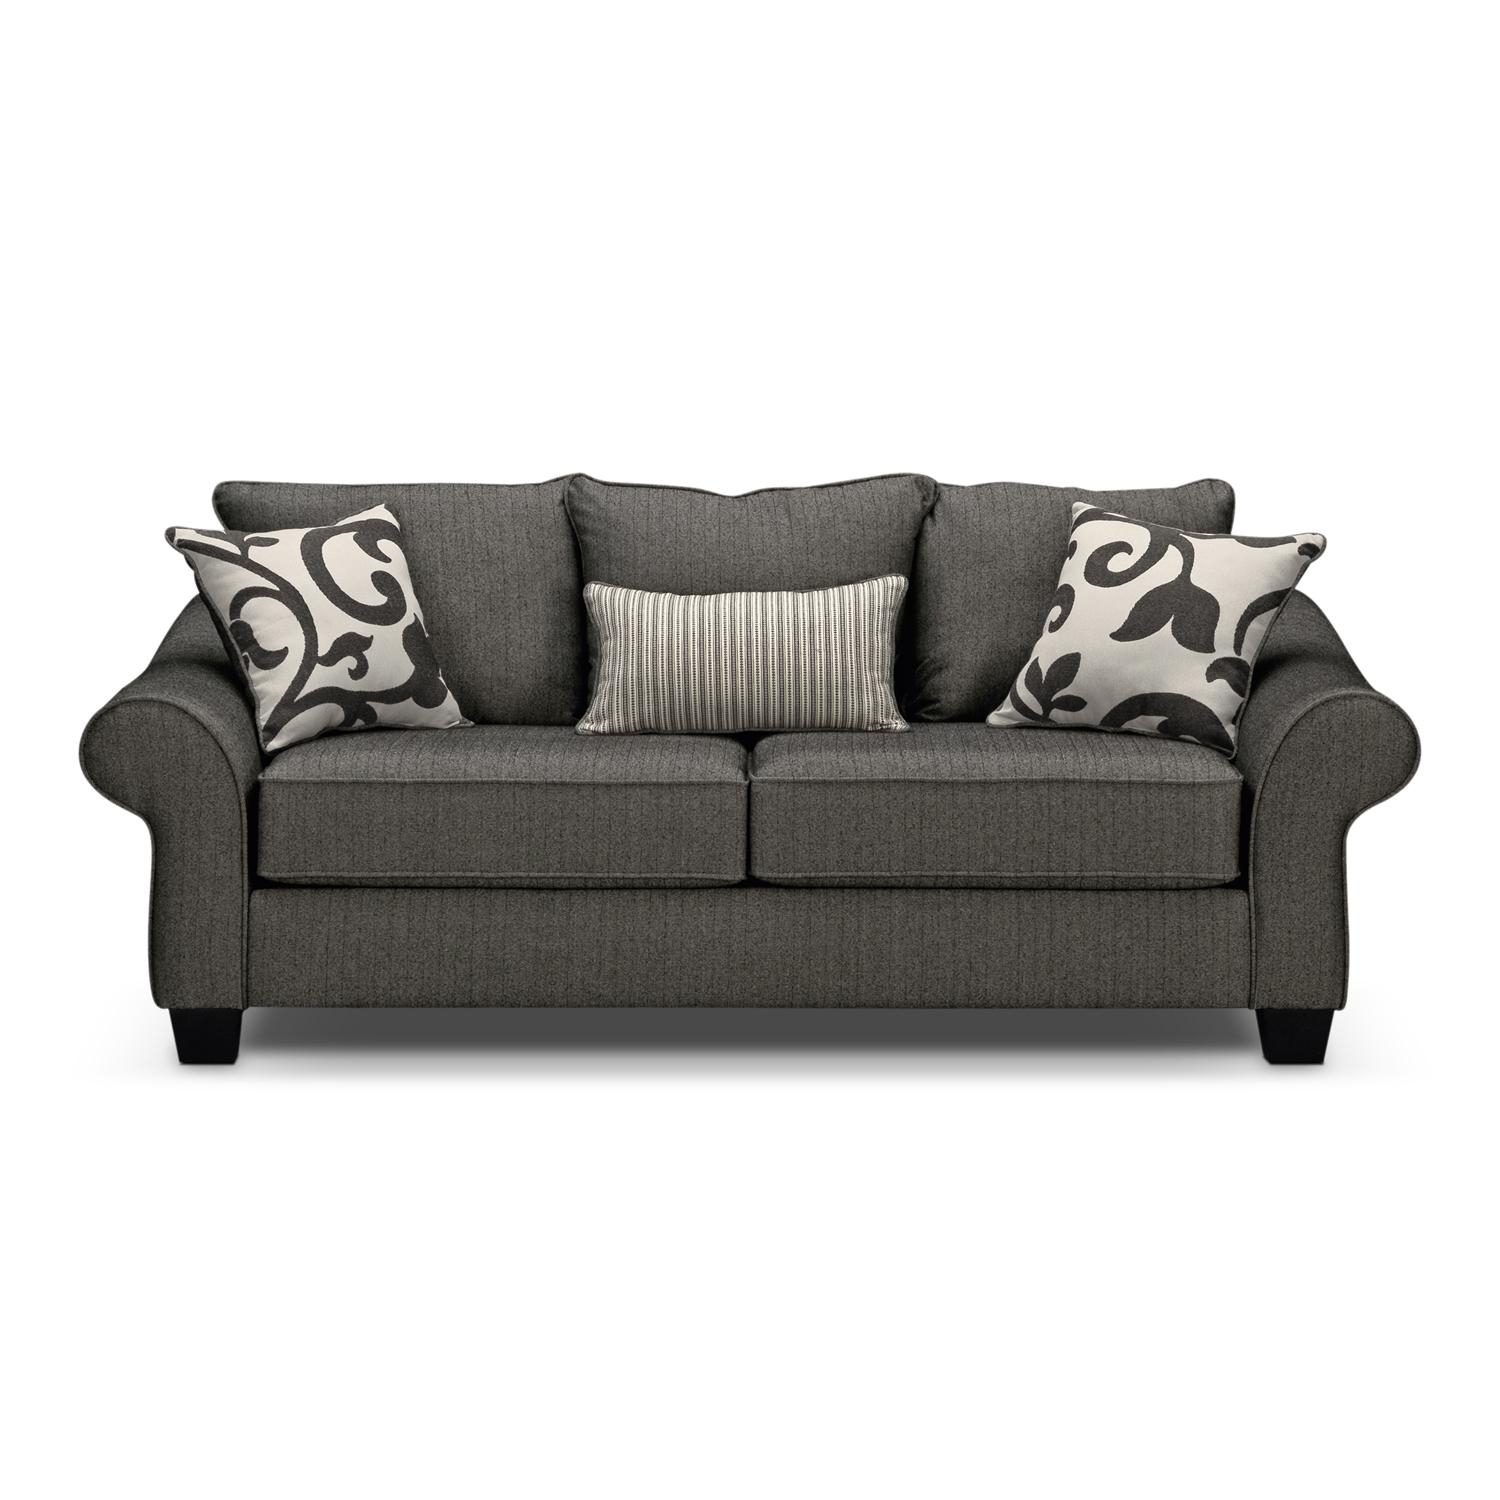 Sofas Center : Value City Furniture Sectional Sleepers Sofa Sale Regarding City Sofa Beds (Image 19 of 20)